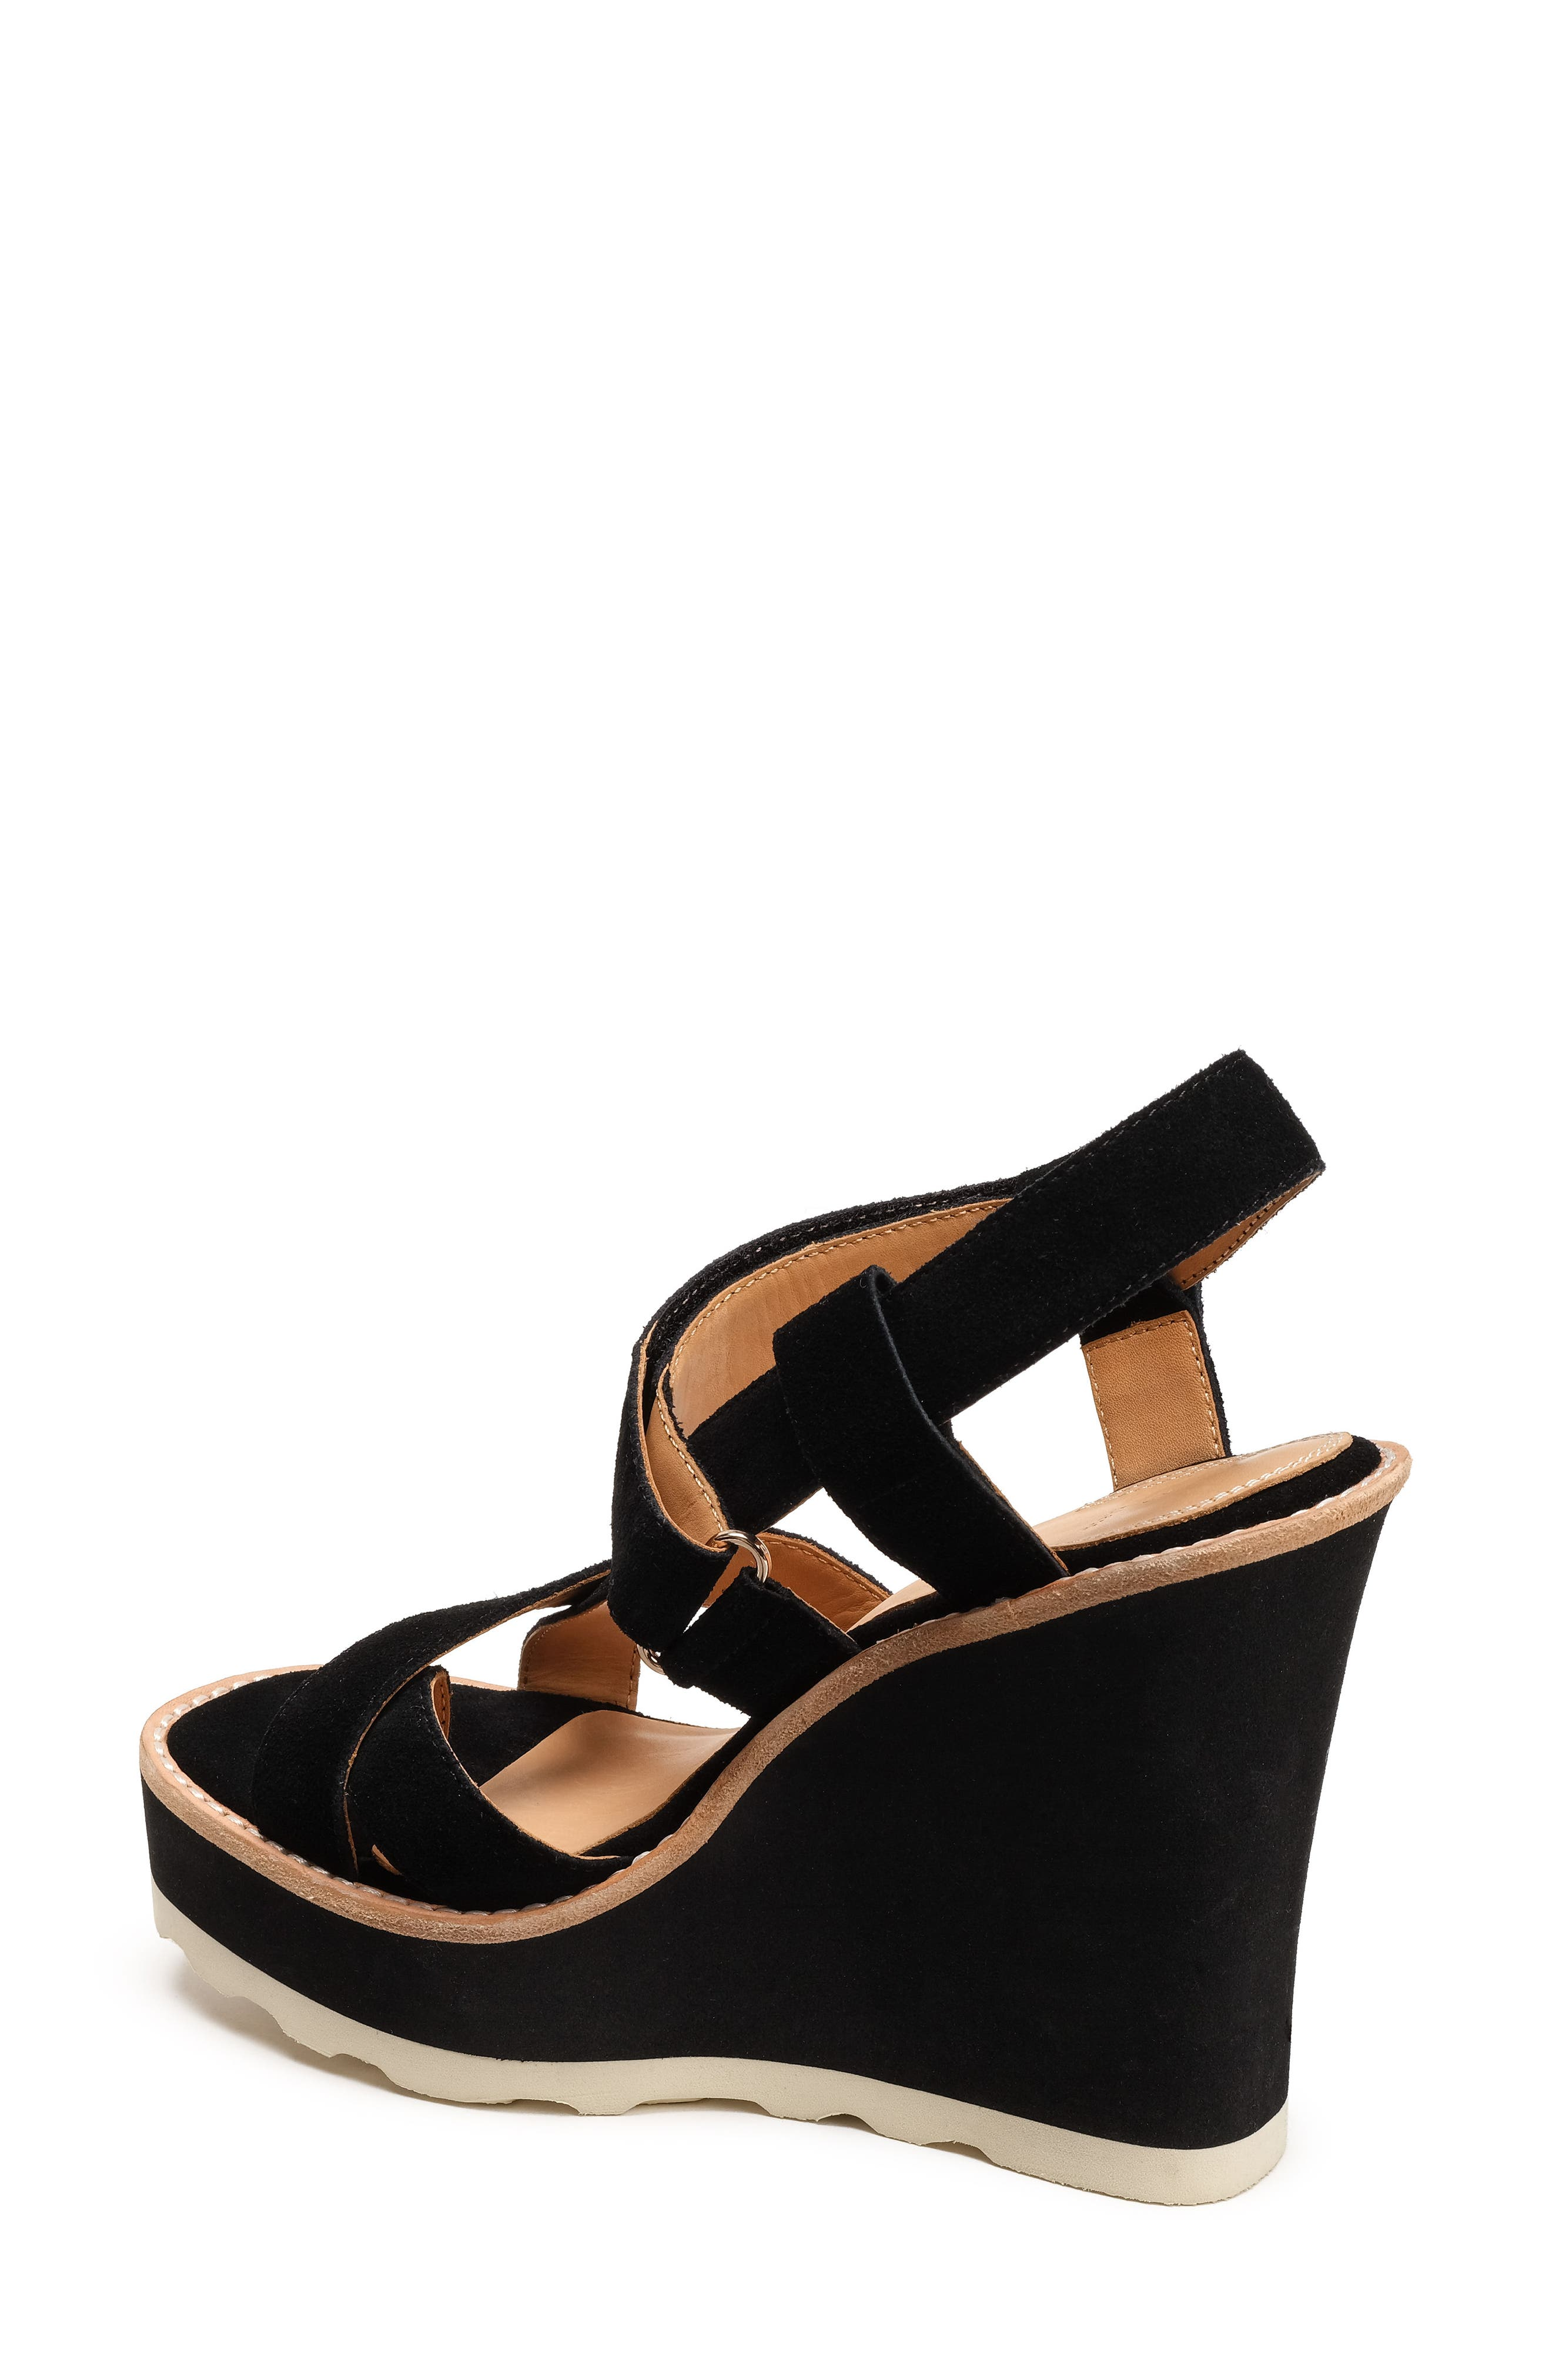 Rae Strappy Wedge Sandal,                             Alternate thumbnail 2, color,                             001